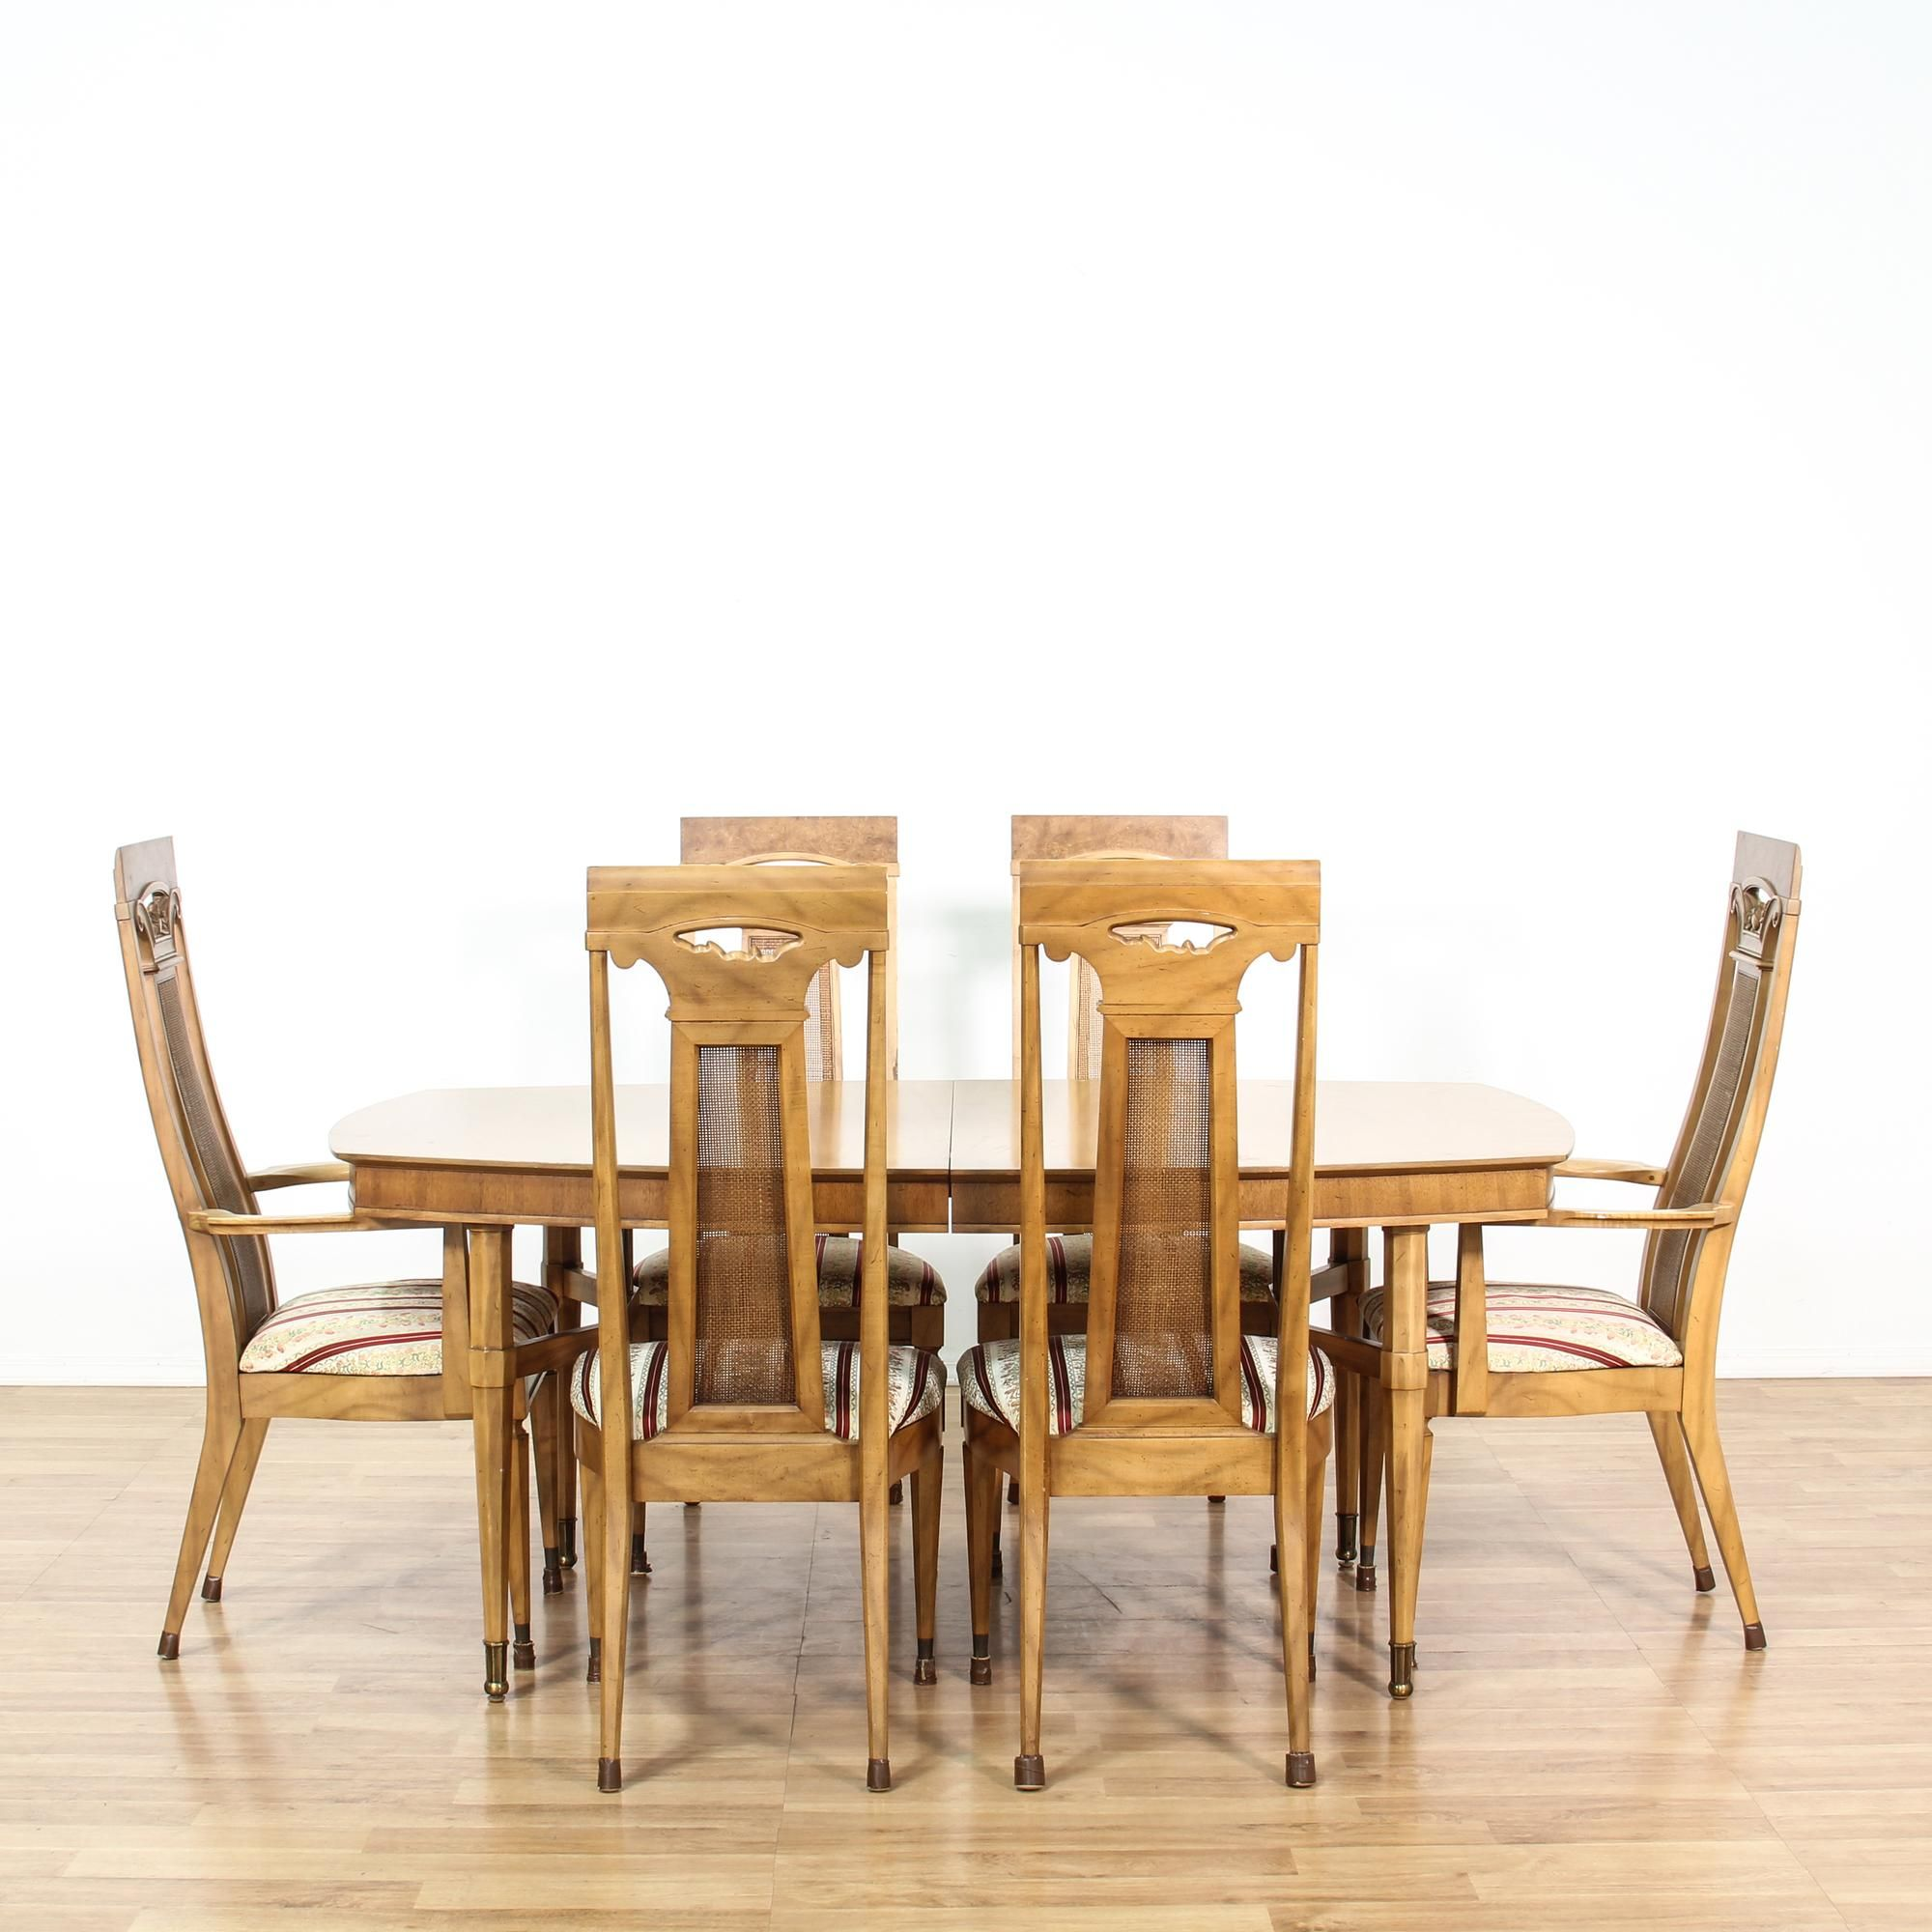 mid century pecan table & set of 6 chairs | pecan wood, pecans and